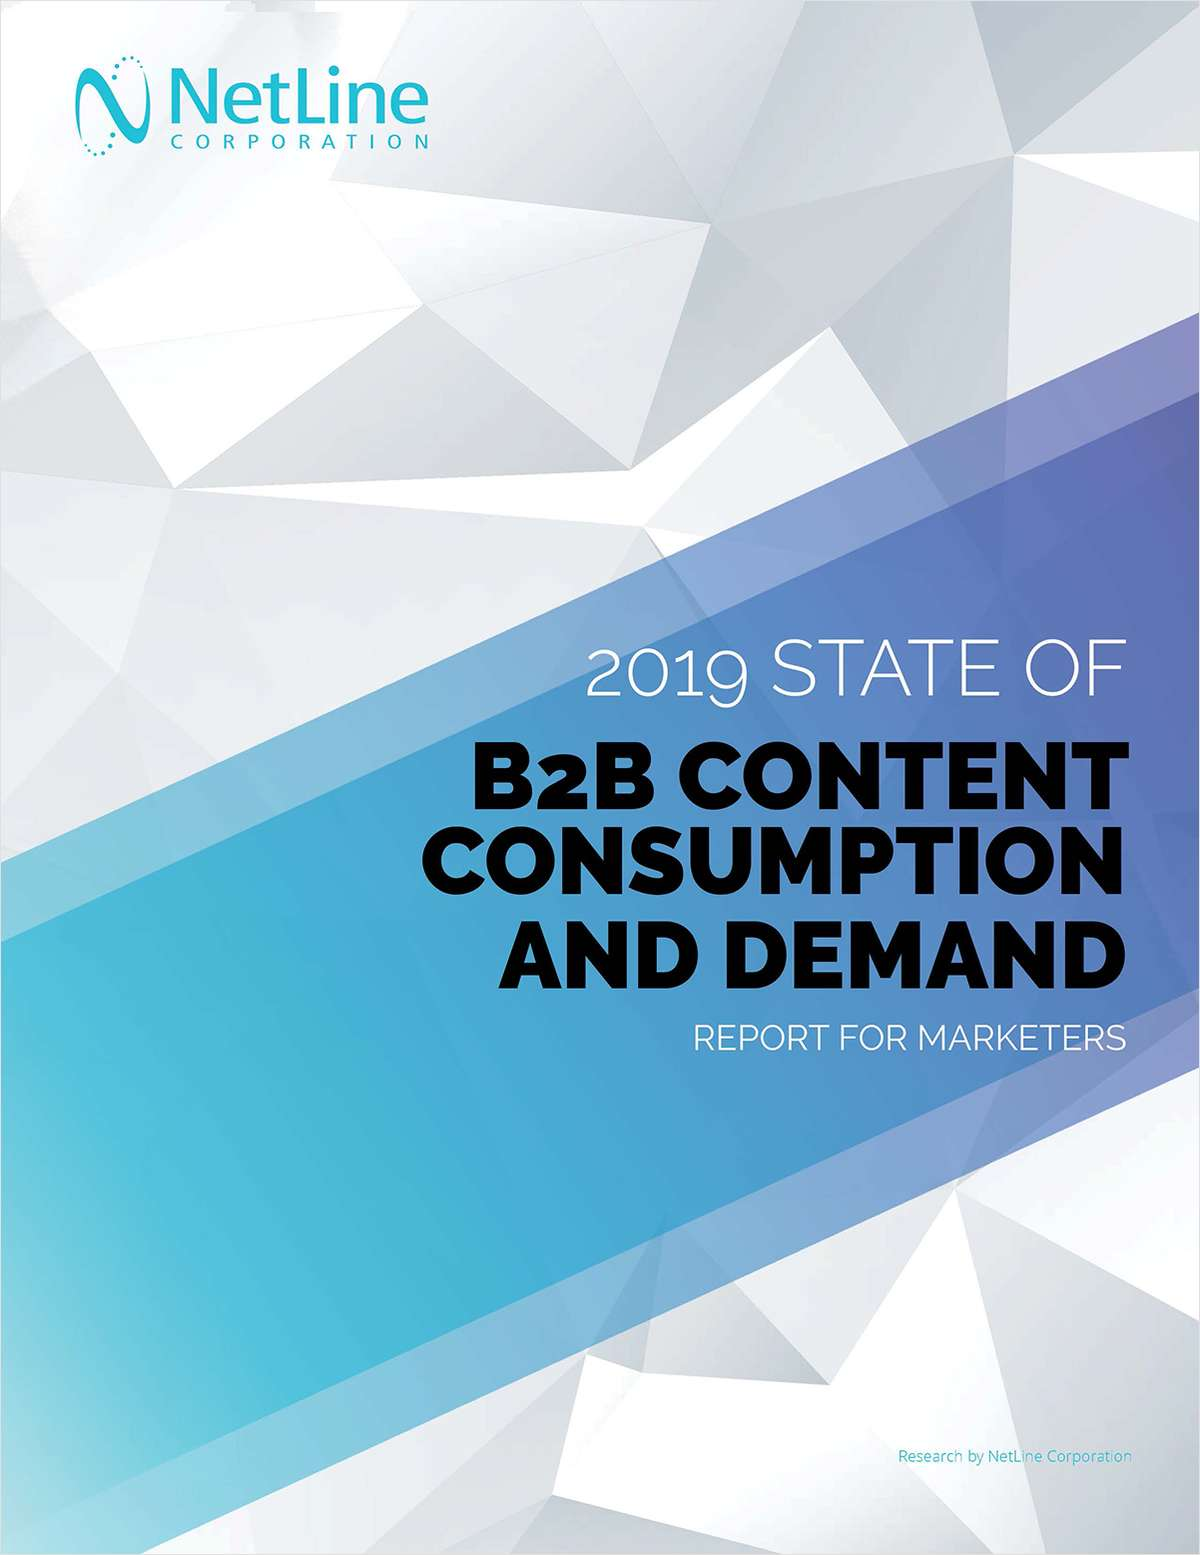 2019 State of B2B Content Consumption and Demand Report for Marketers